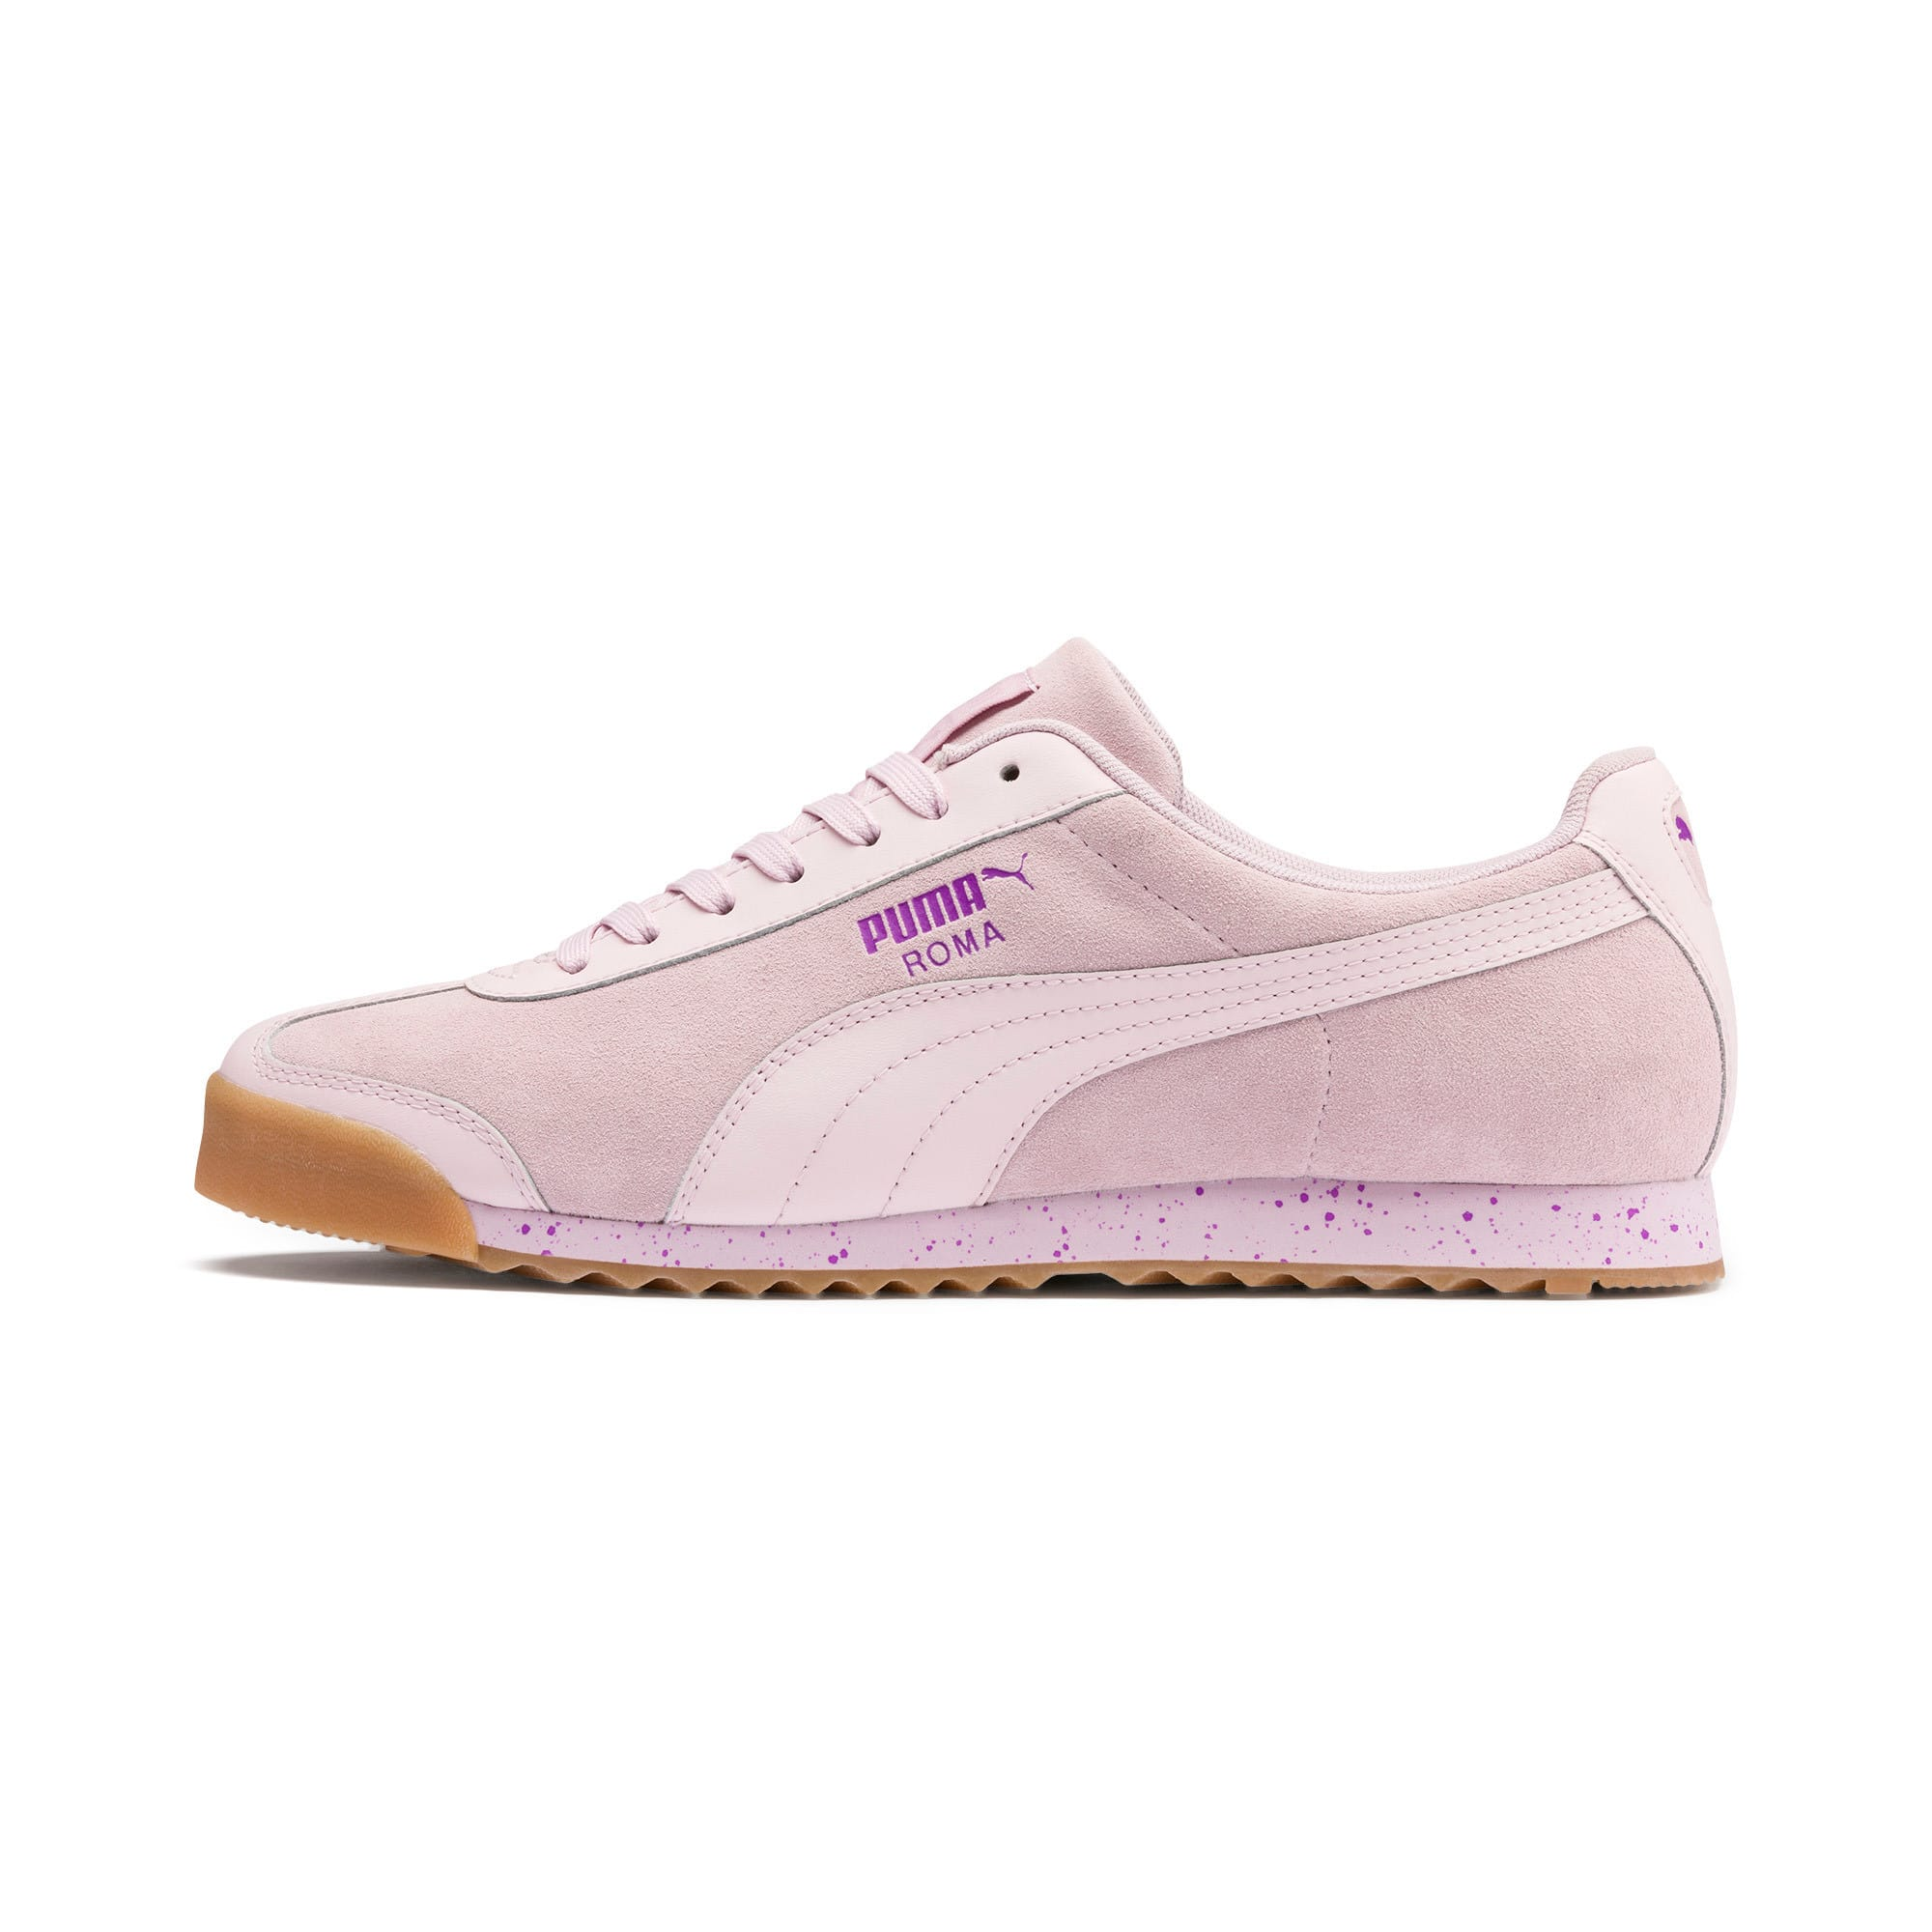 Thumbnail 1 of Roma Classic Dolce Vita Sneakers, Winsome Orchid-Lilac Snow, medium